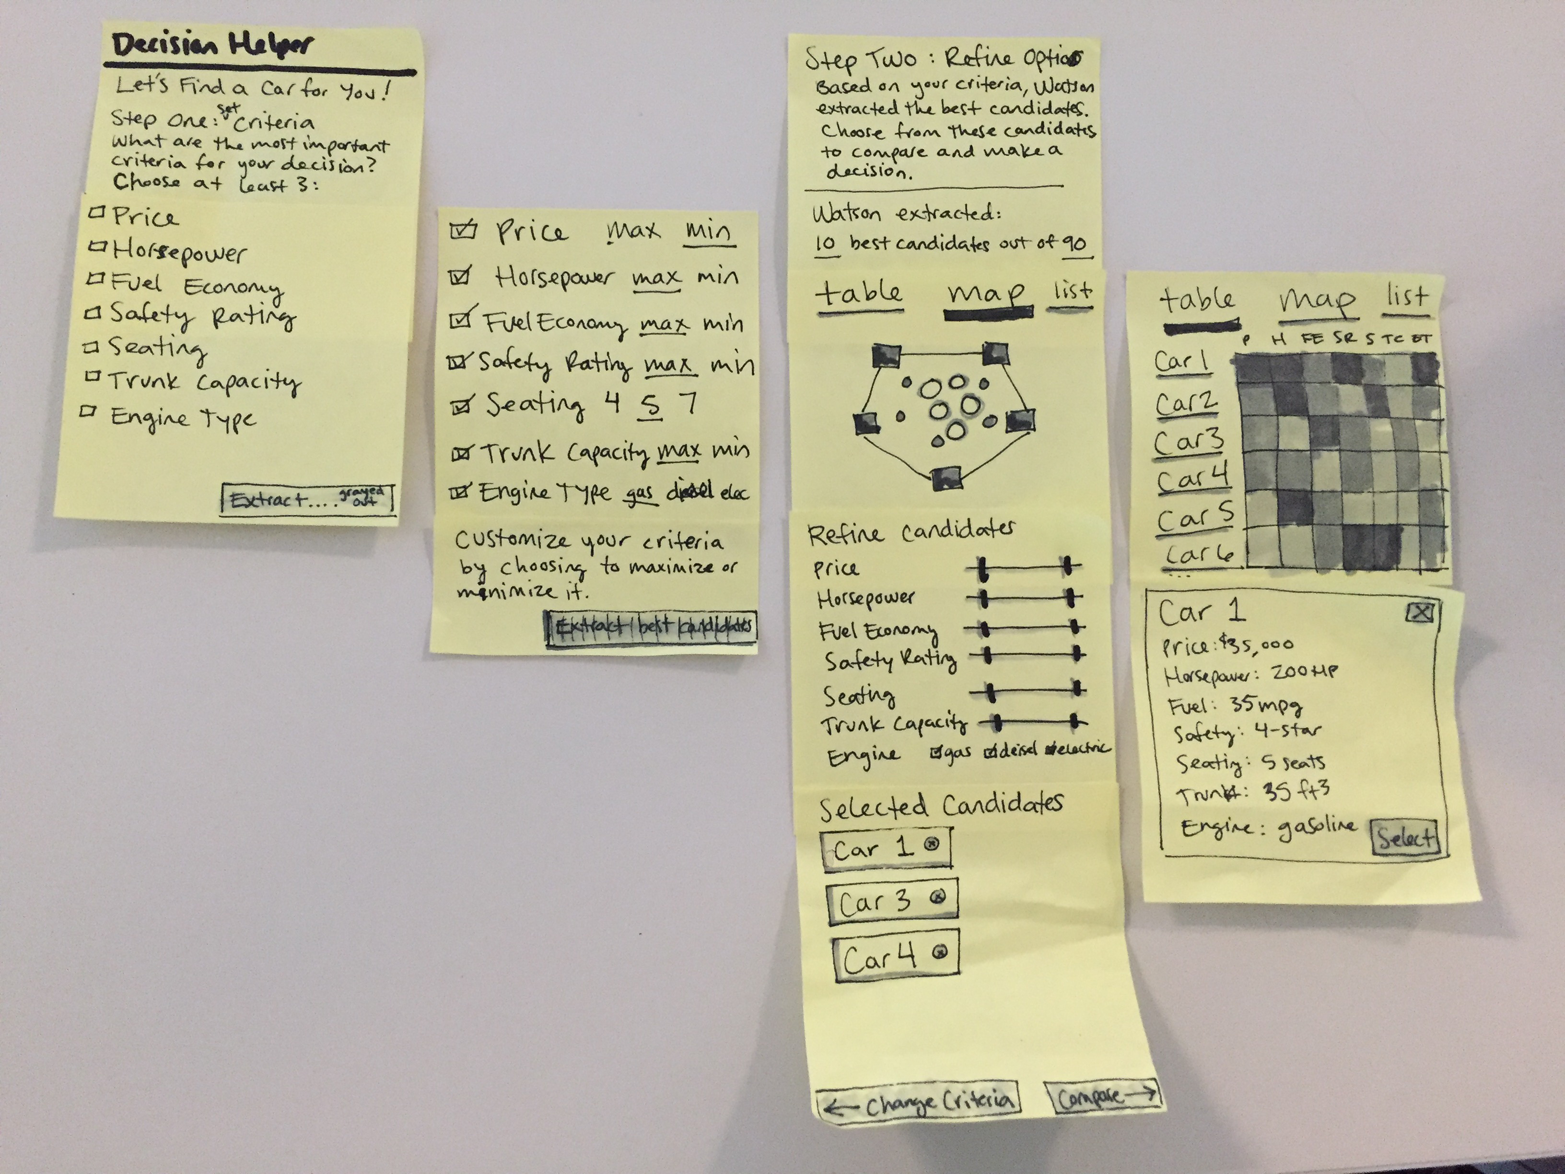 Low-fidelity paper prototypes don't look like the final product